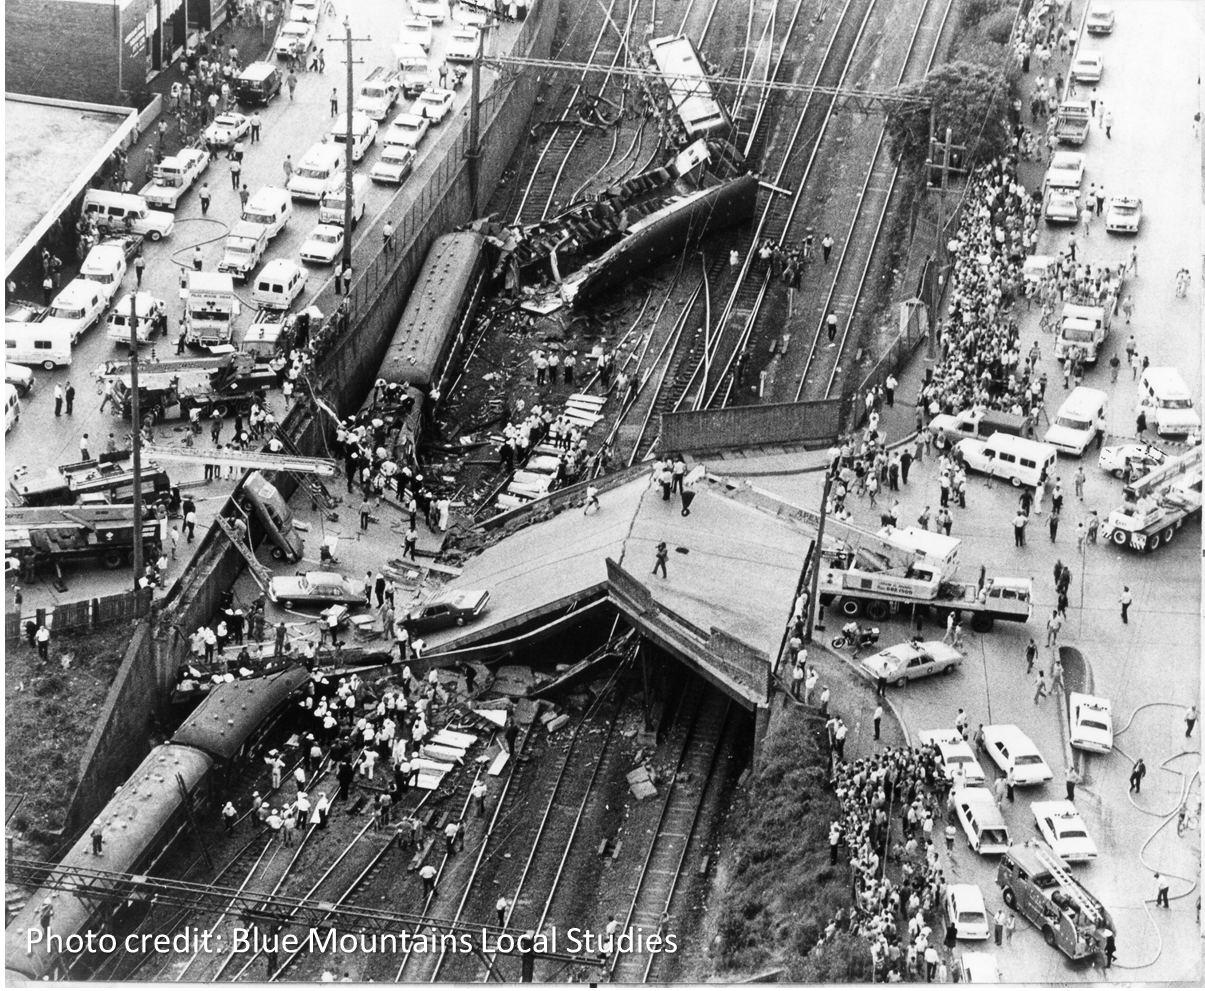 Photo of Granville Rail Disaster, Australia, January 1977